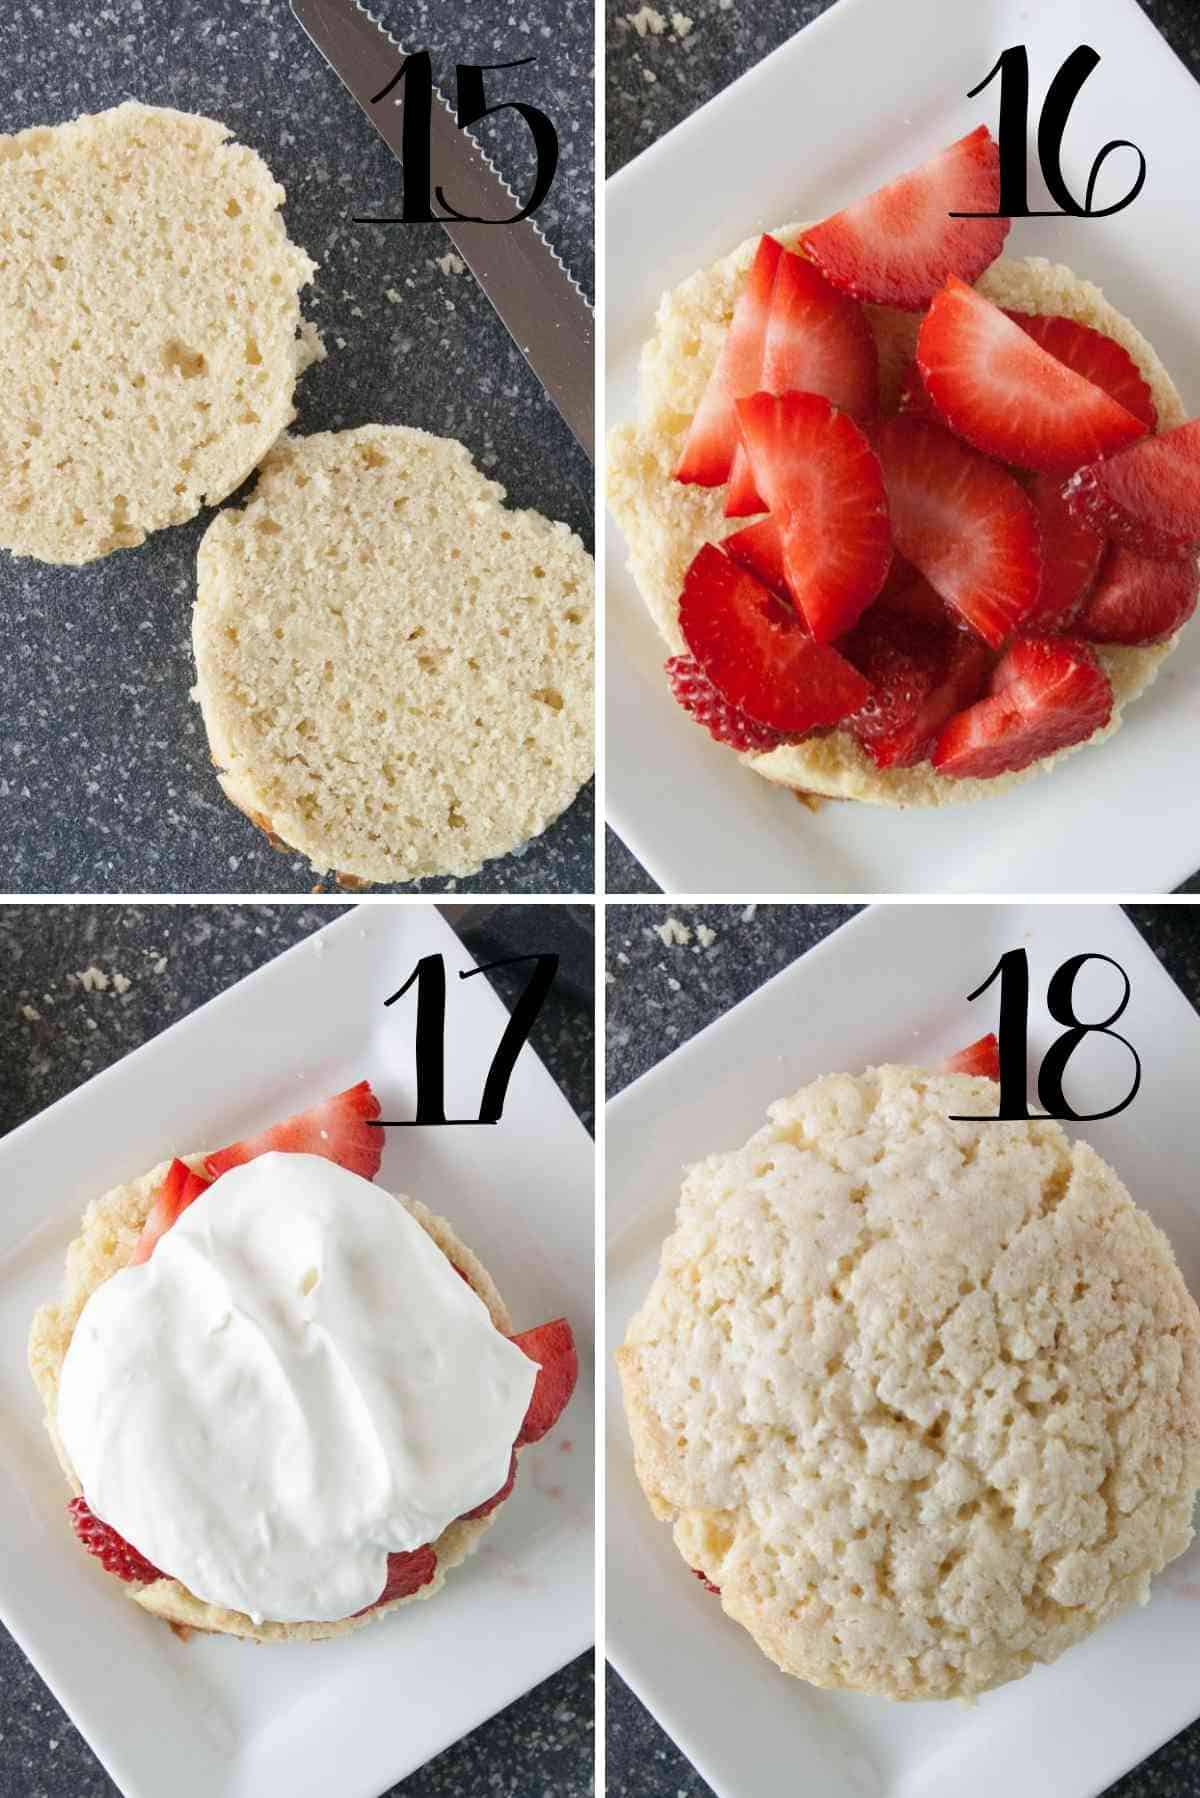 Assembly of strawberry shortcakes.